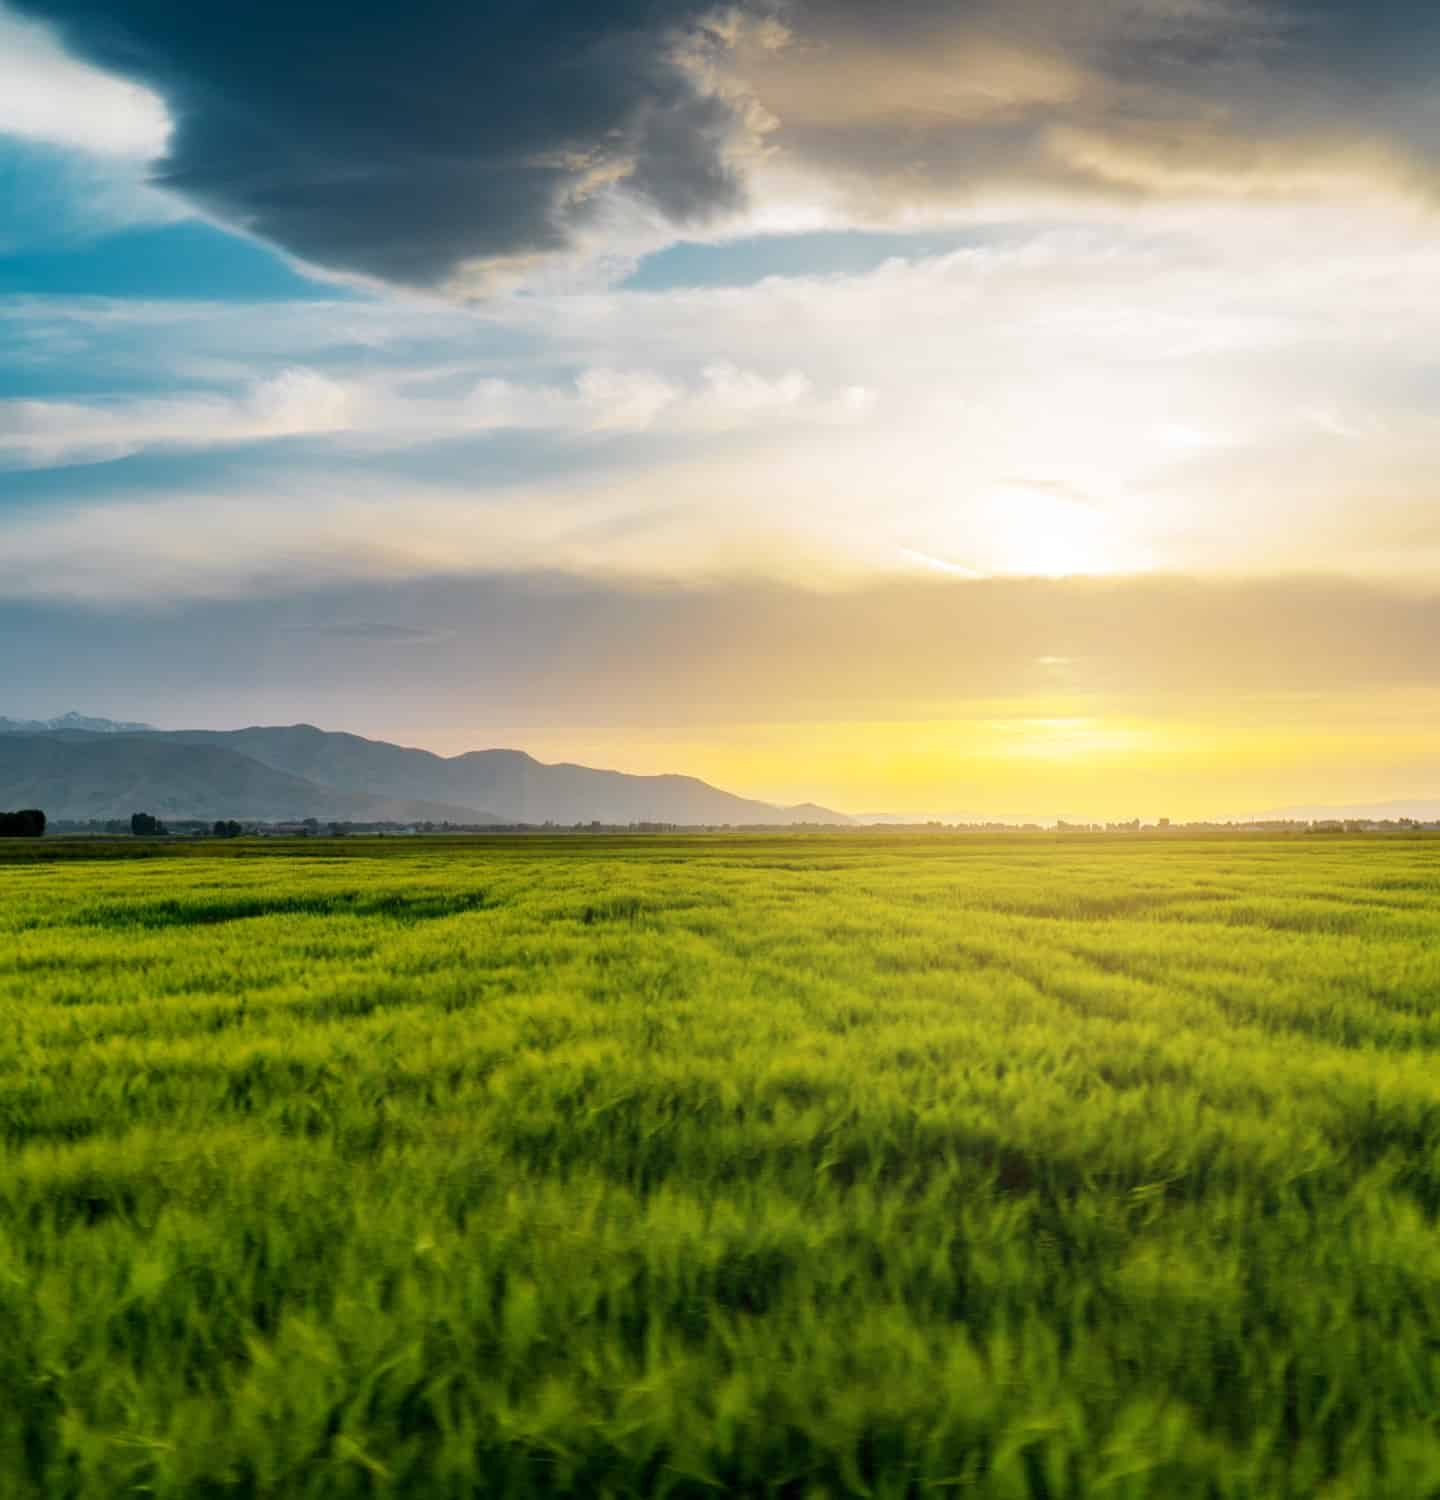 Field of green gras with sunset and blue sky